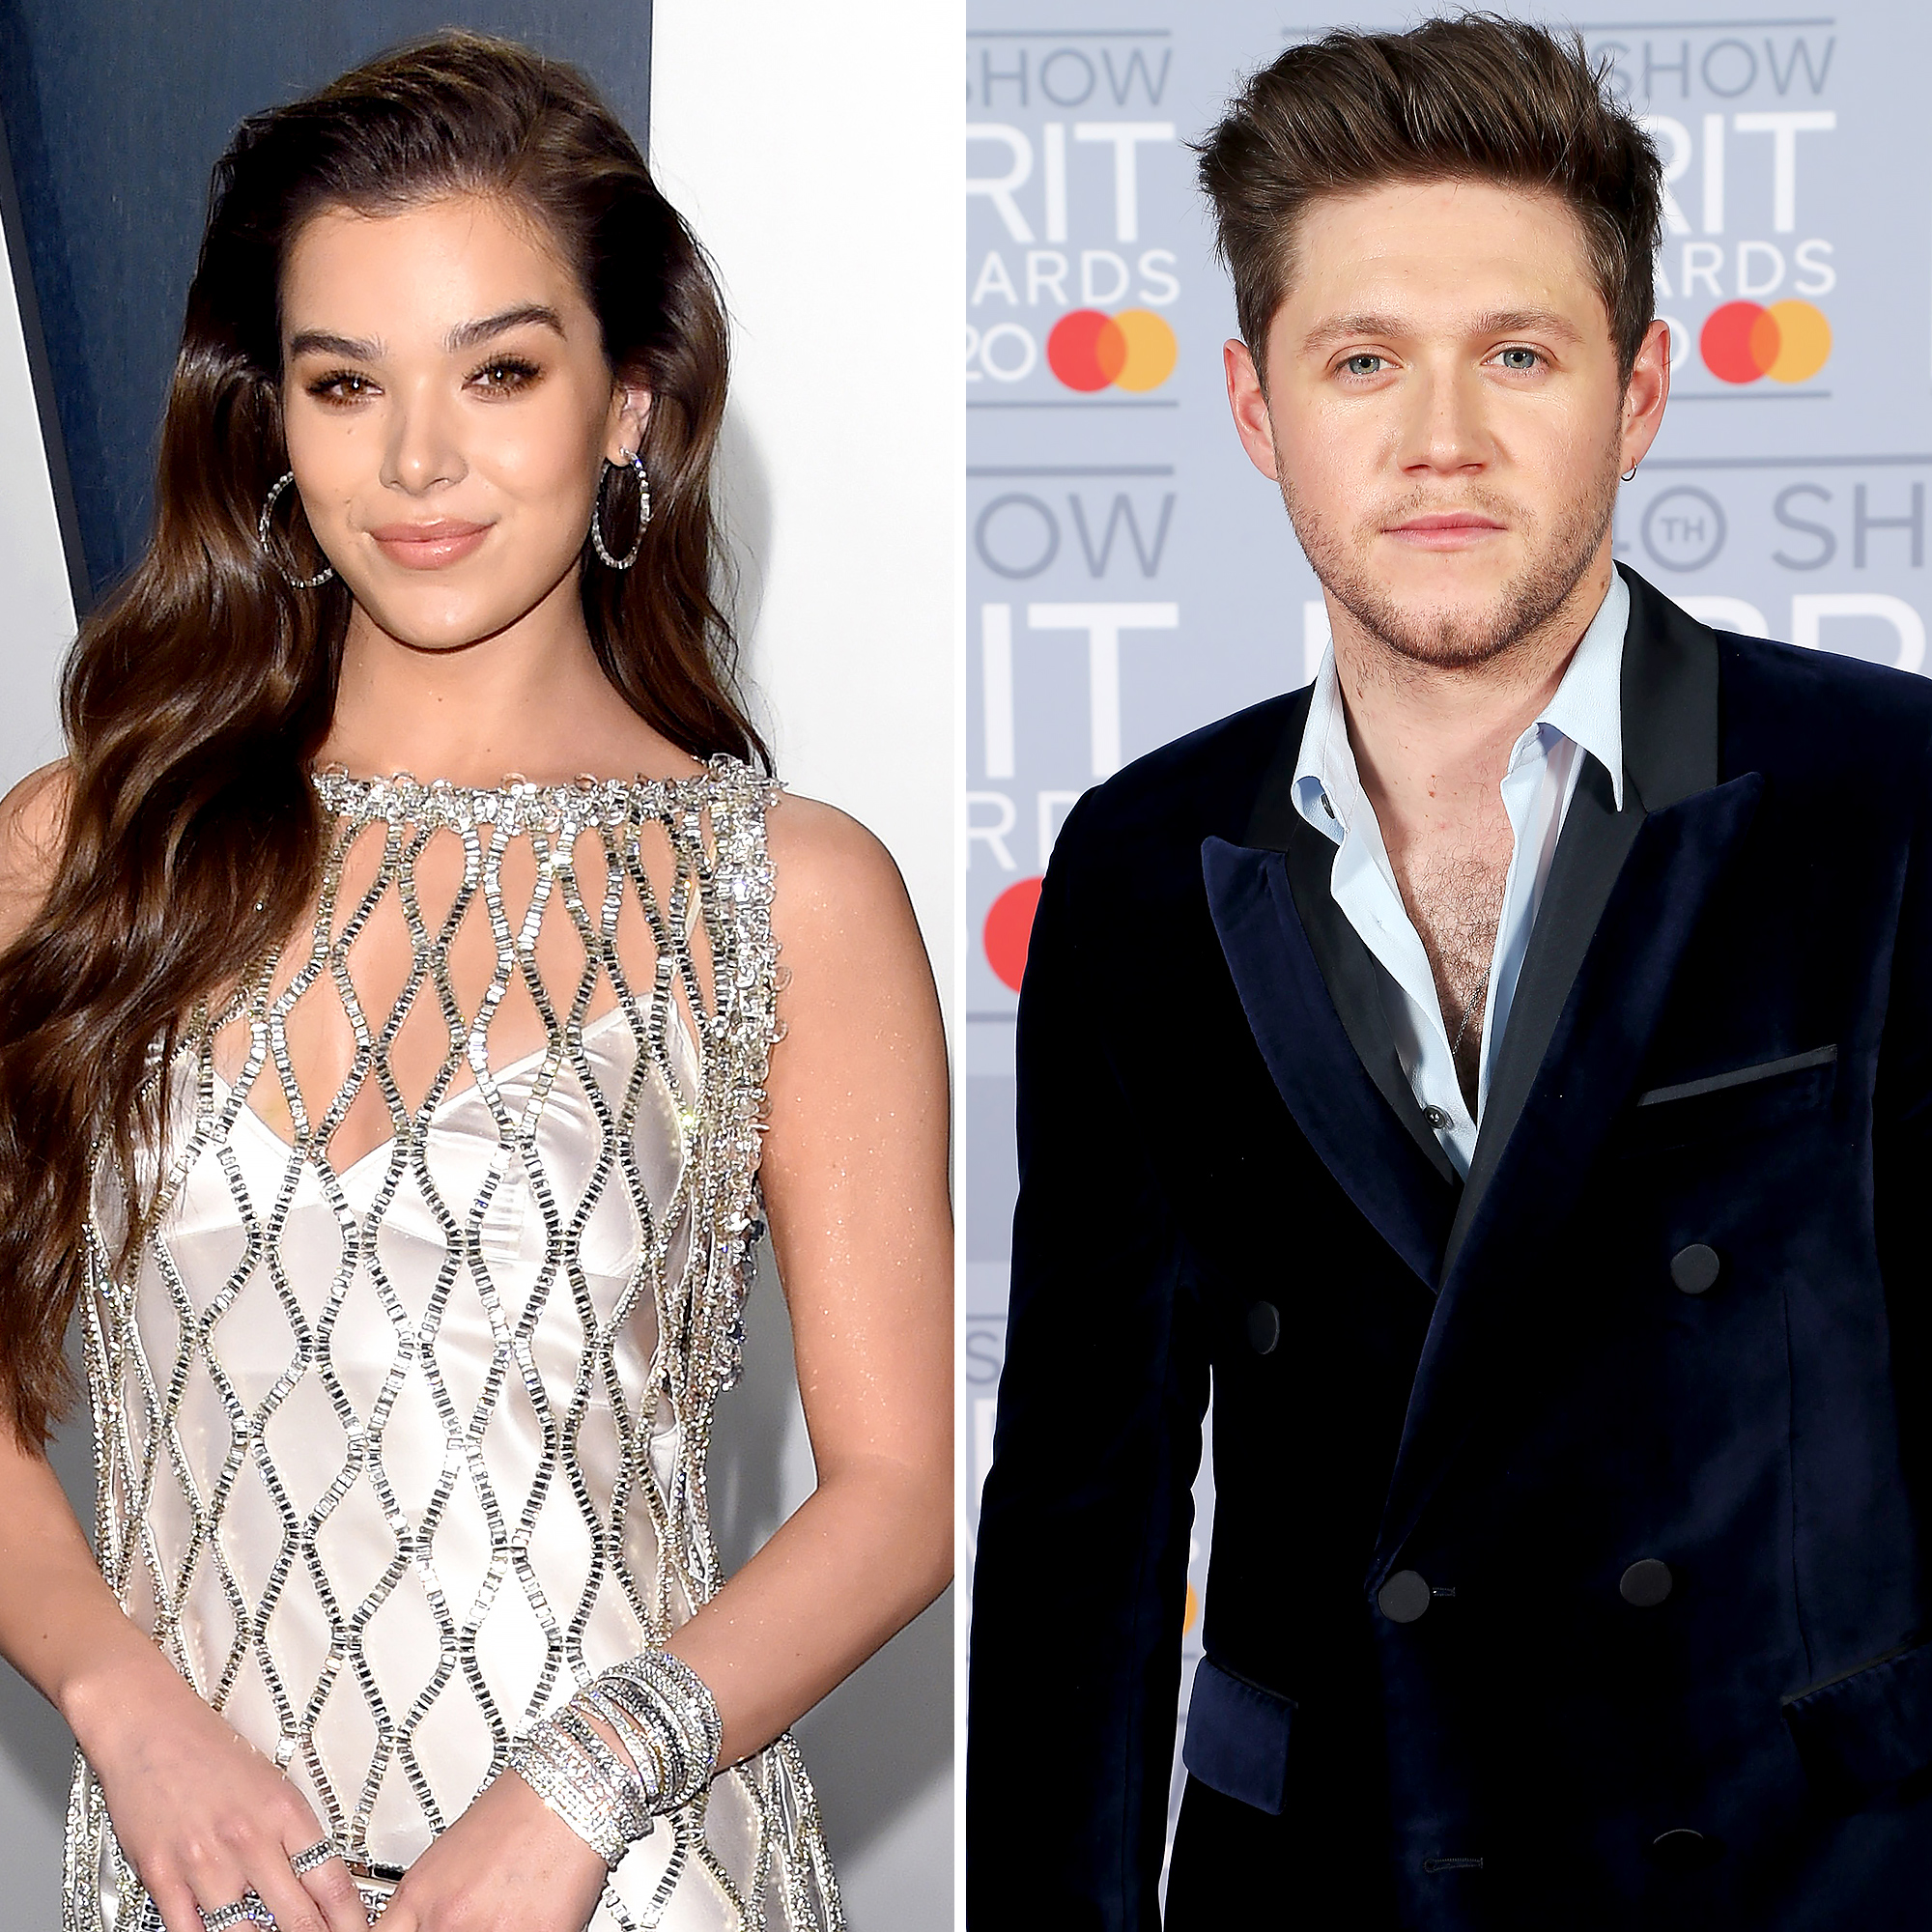 Hailee Steinfeld Says Song About Ex Niall Horan Was the Hardest to Write